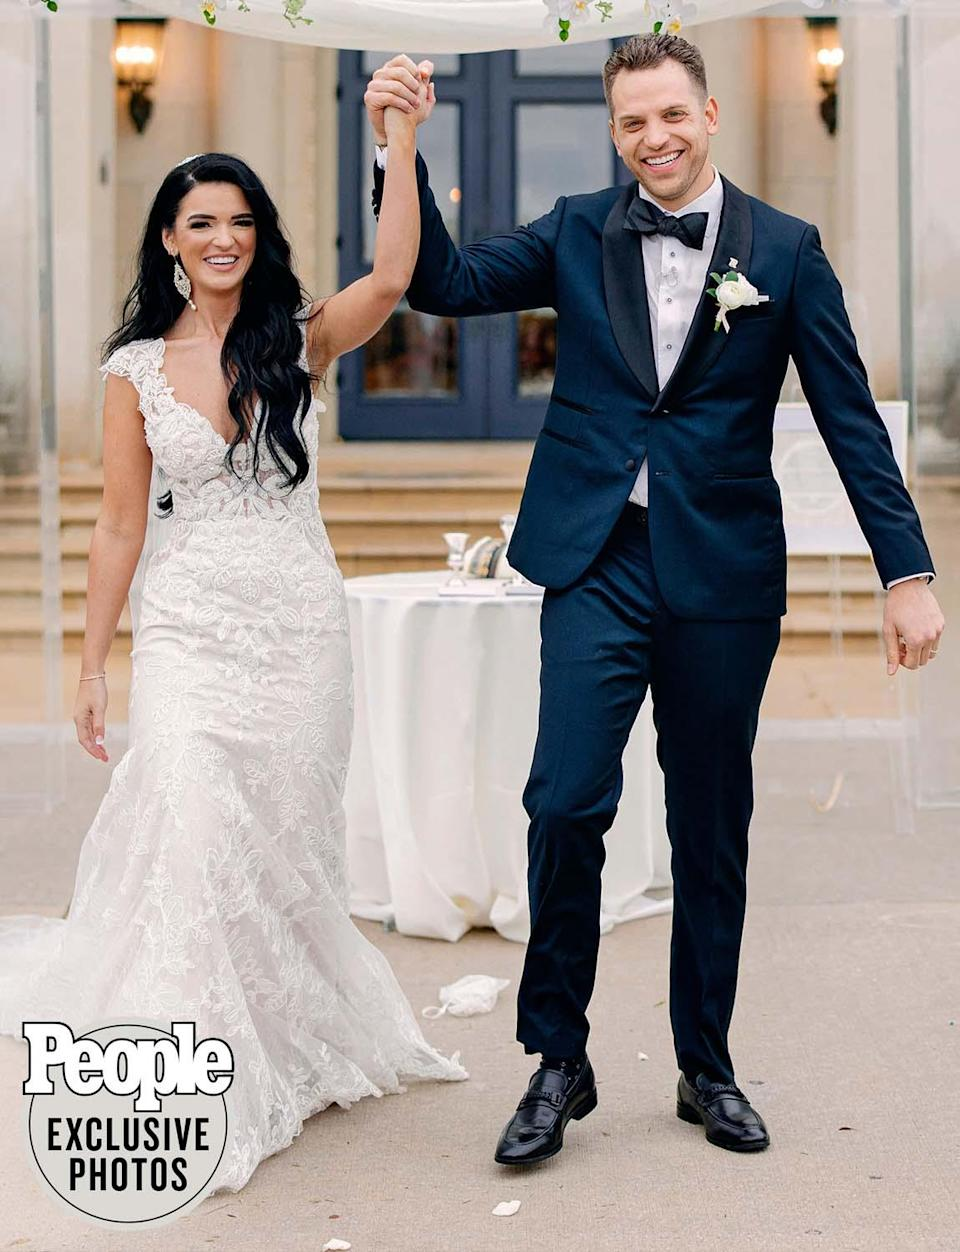 "<p>The couple will honeymoon in Hawaii and after that? Bachelor babies may be on the way.</p> <p>""I want three kids, but Raven might be tapped out at two,"" Gottschalk says with a laugh. Adds Gates: ""I'm just so happy to marry someone I love so much. I prayed for this day. And God willing, we will have a honeymoon baby!""</p>"